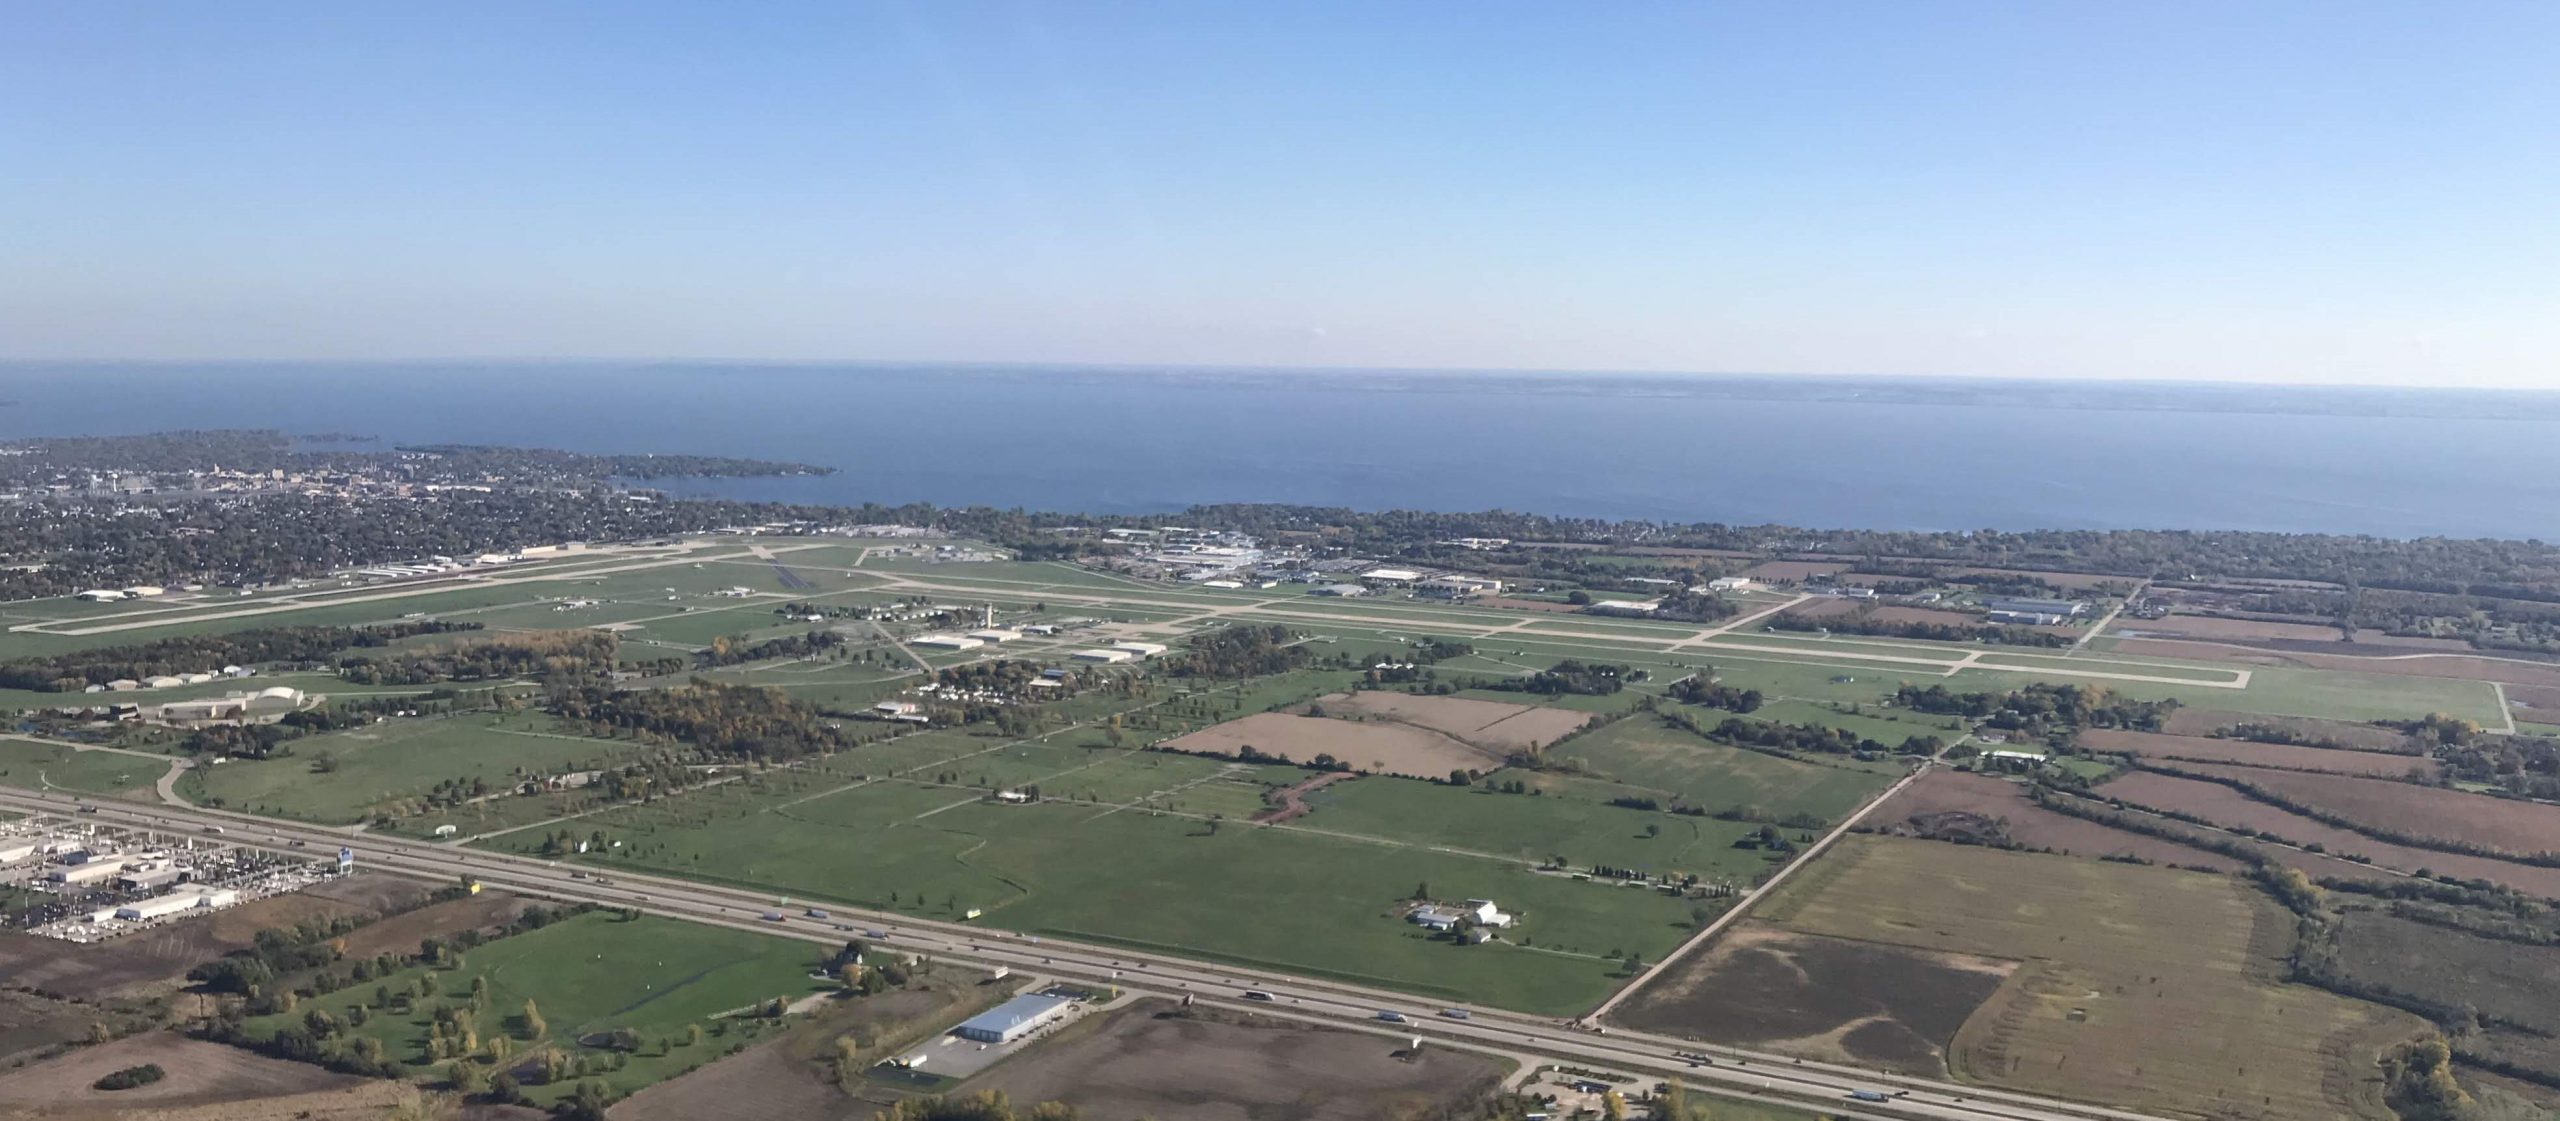 Will EAA AirVenture Oshkosh Have To Cancel Due To COVID-19? We Asked, They Answered.